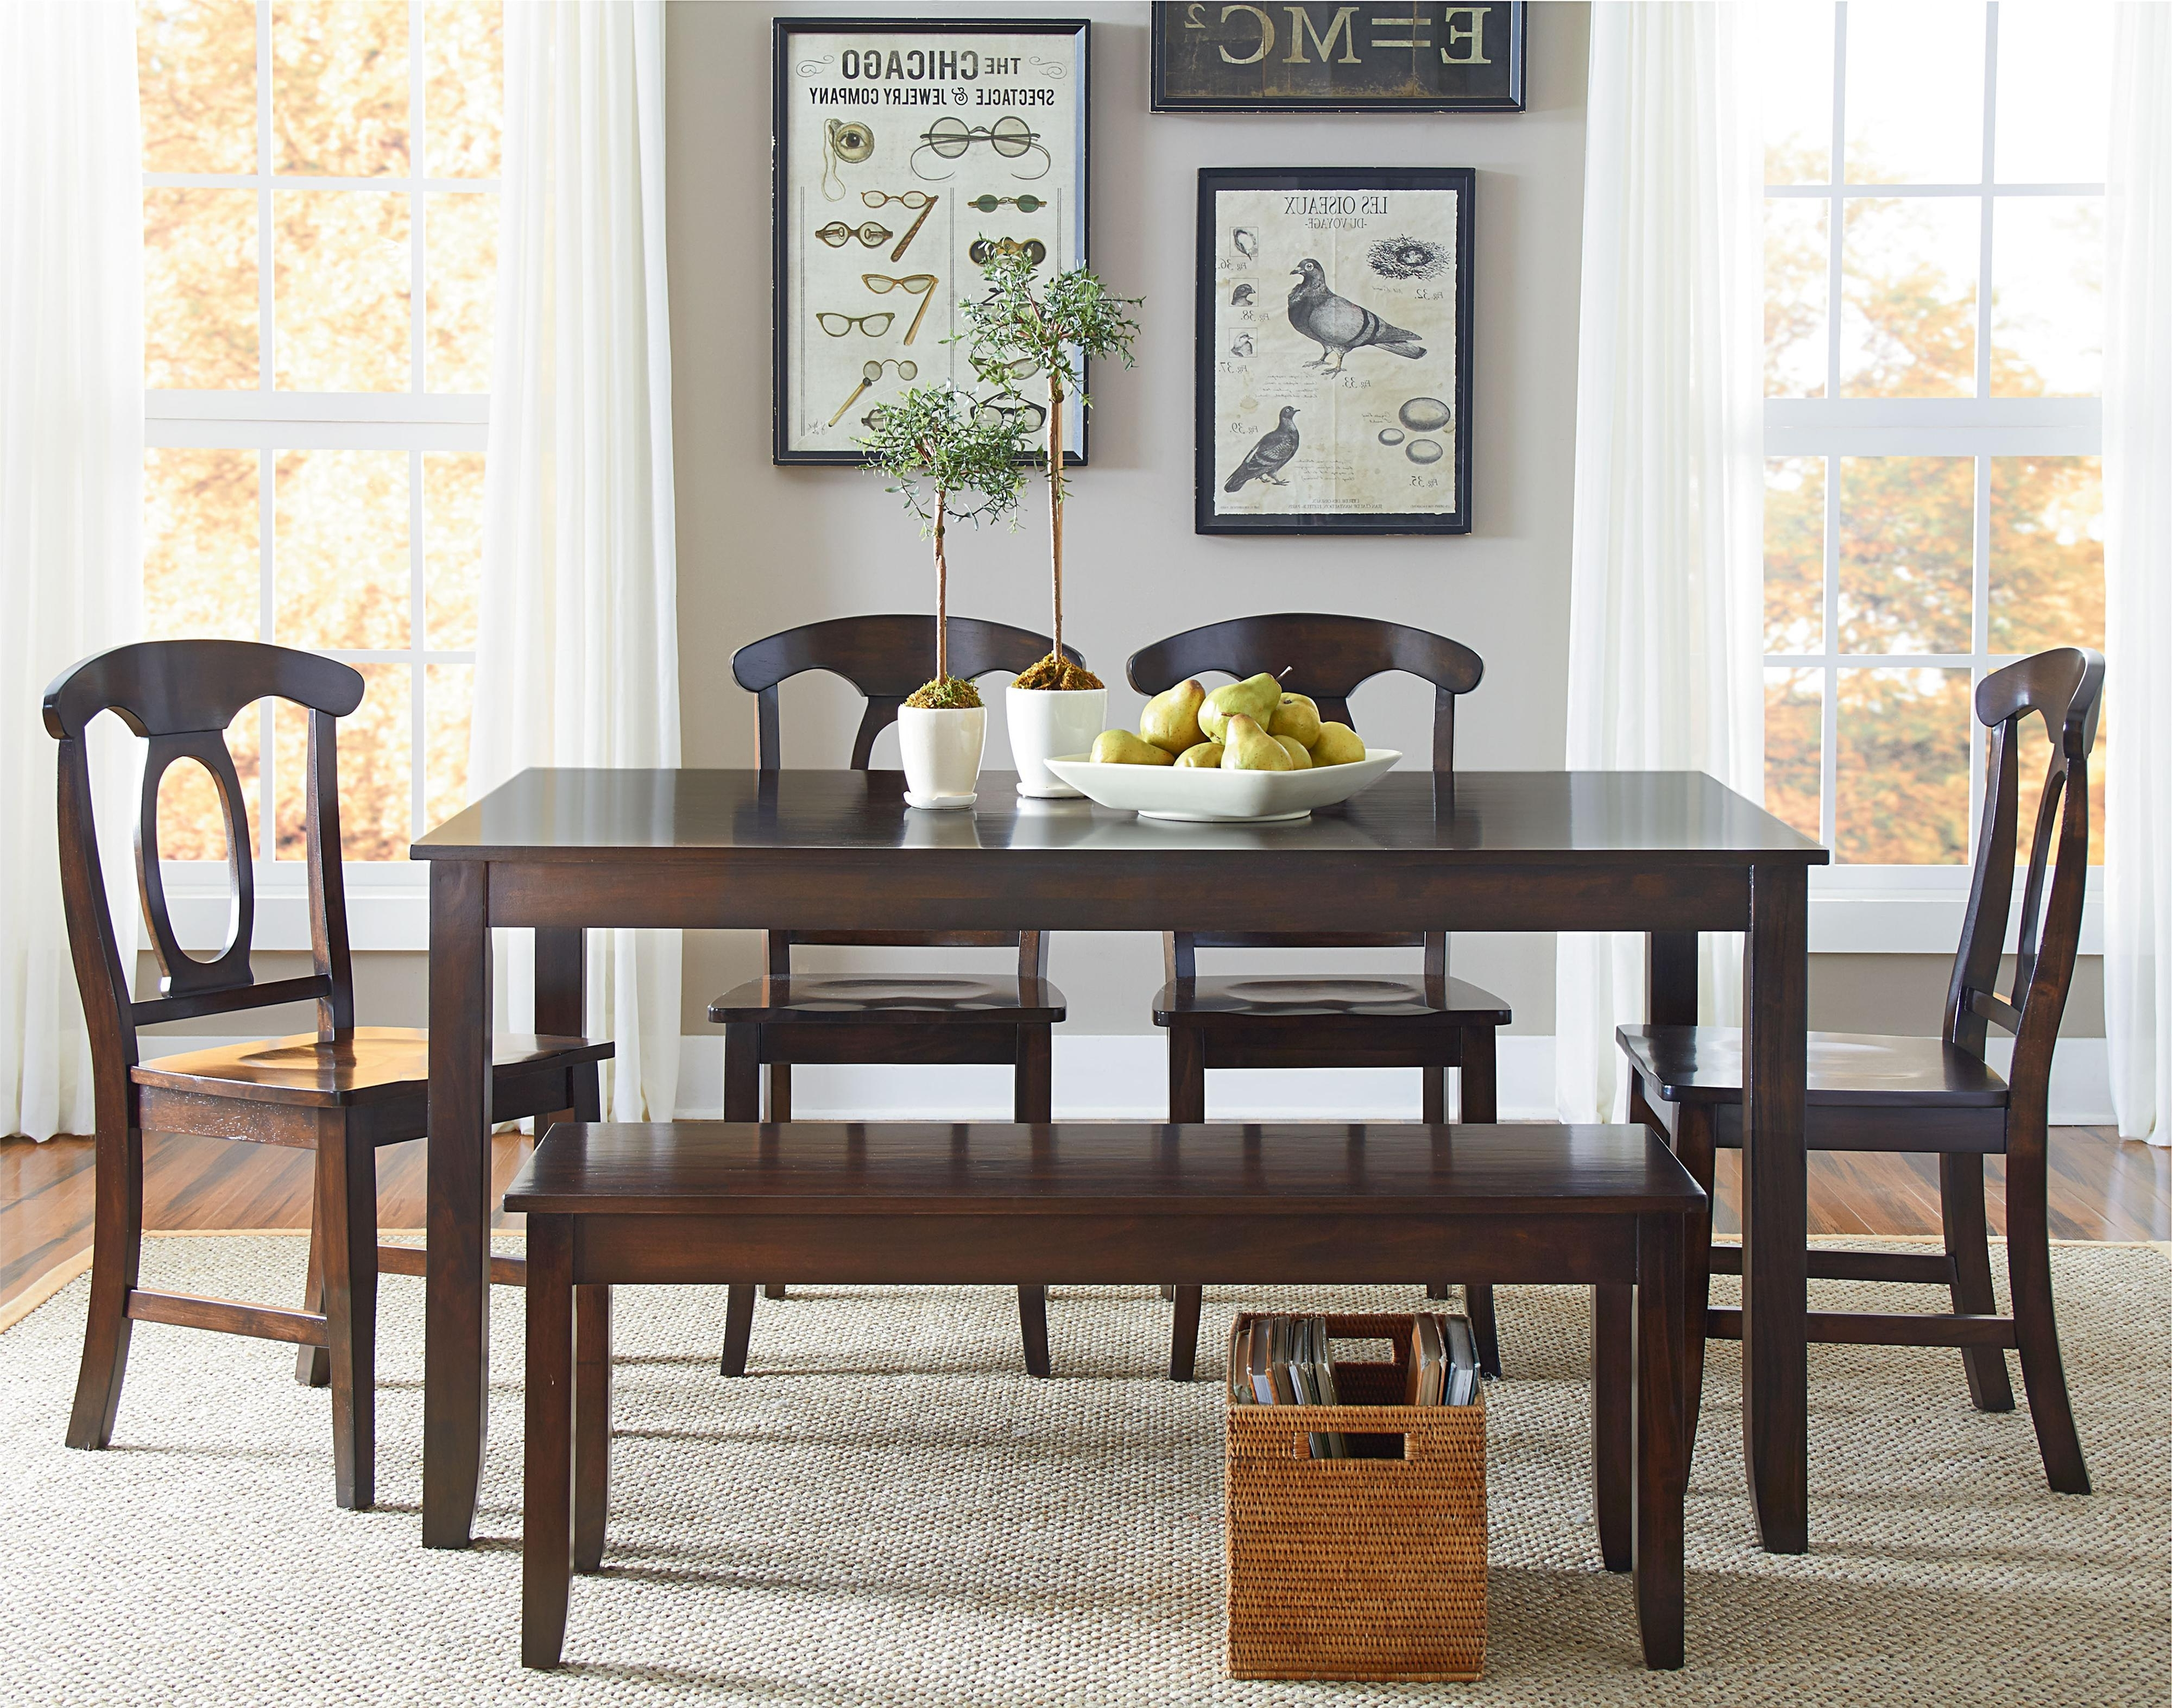 Newest Standard Furniture Larkin 6 Piece Dining Table Set With Open Oval With Regard To Cheap Dining Tables Sets (Gallery 19 of 25)